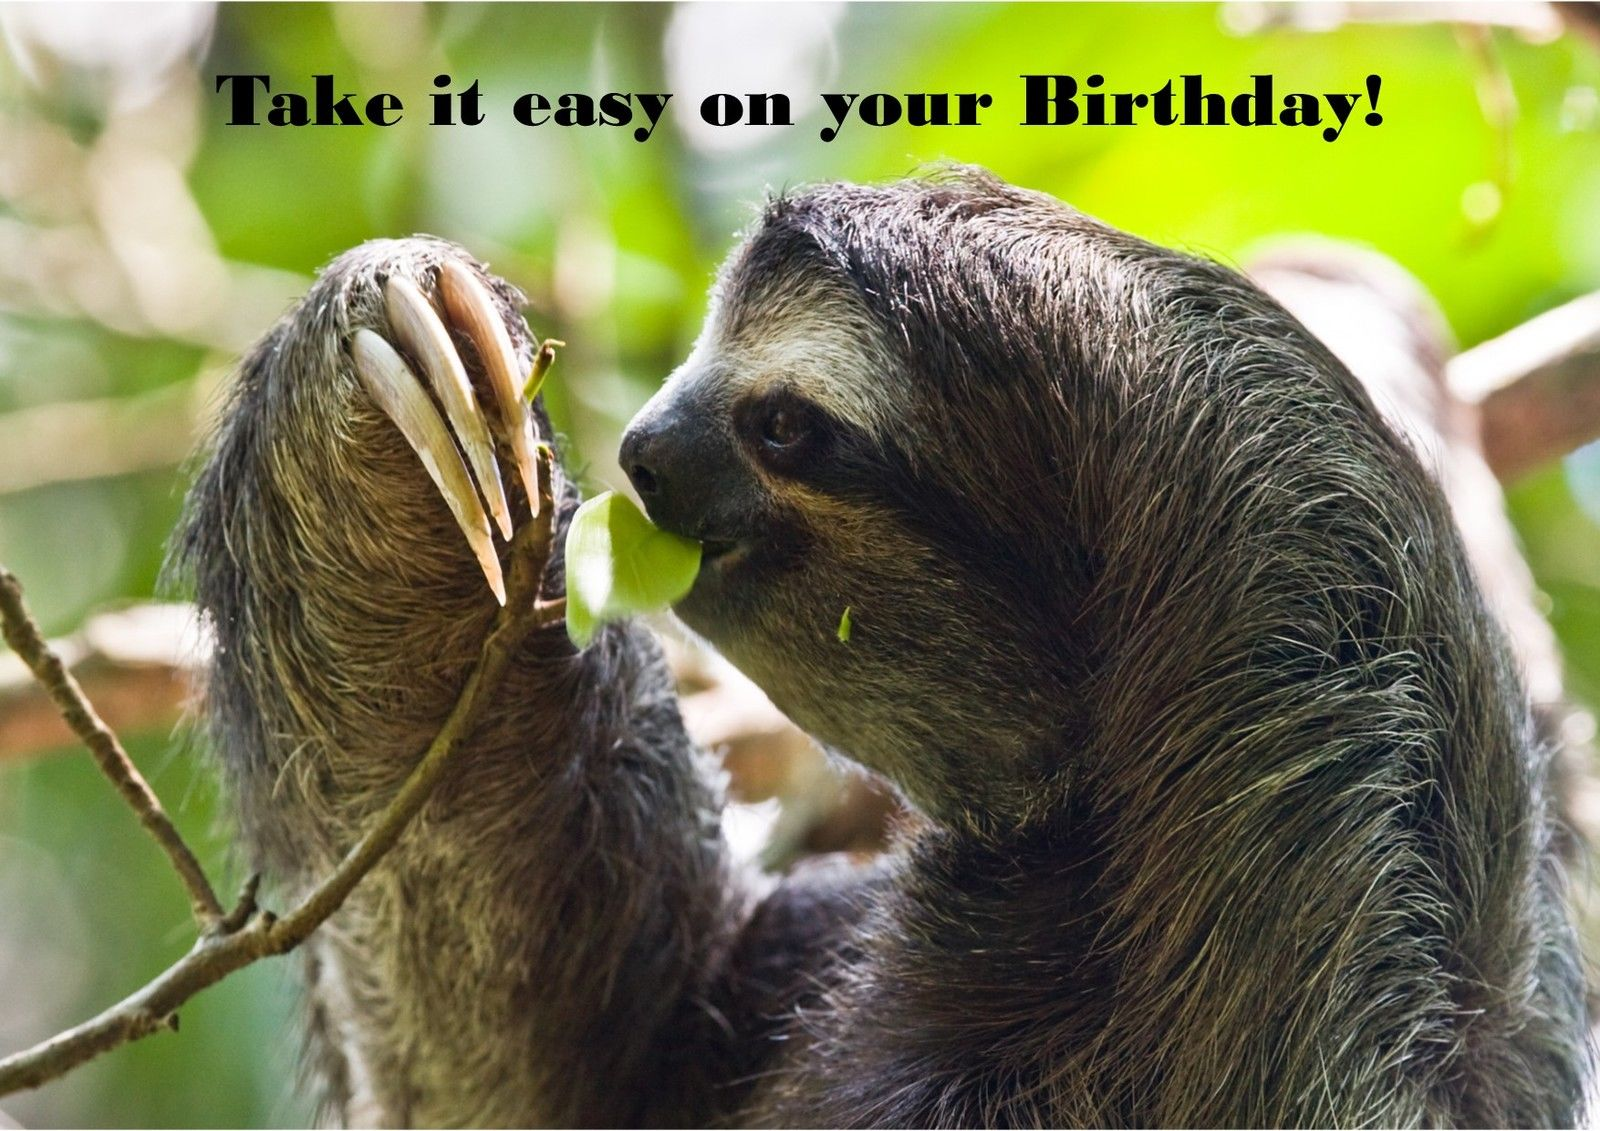 Sloth Cute Animals Personalised Printed Birthday Cards Funny